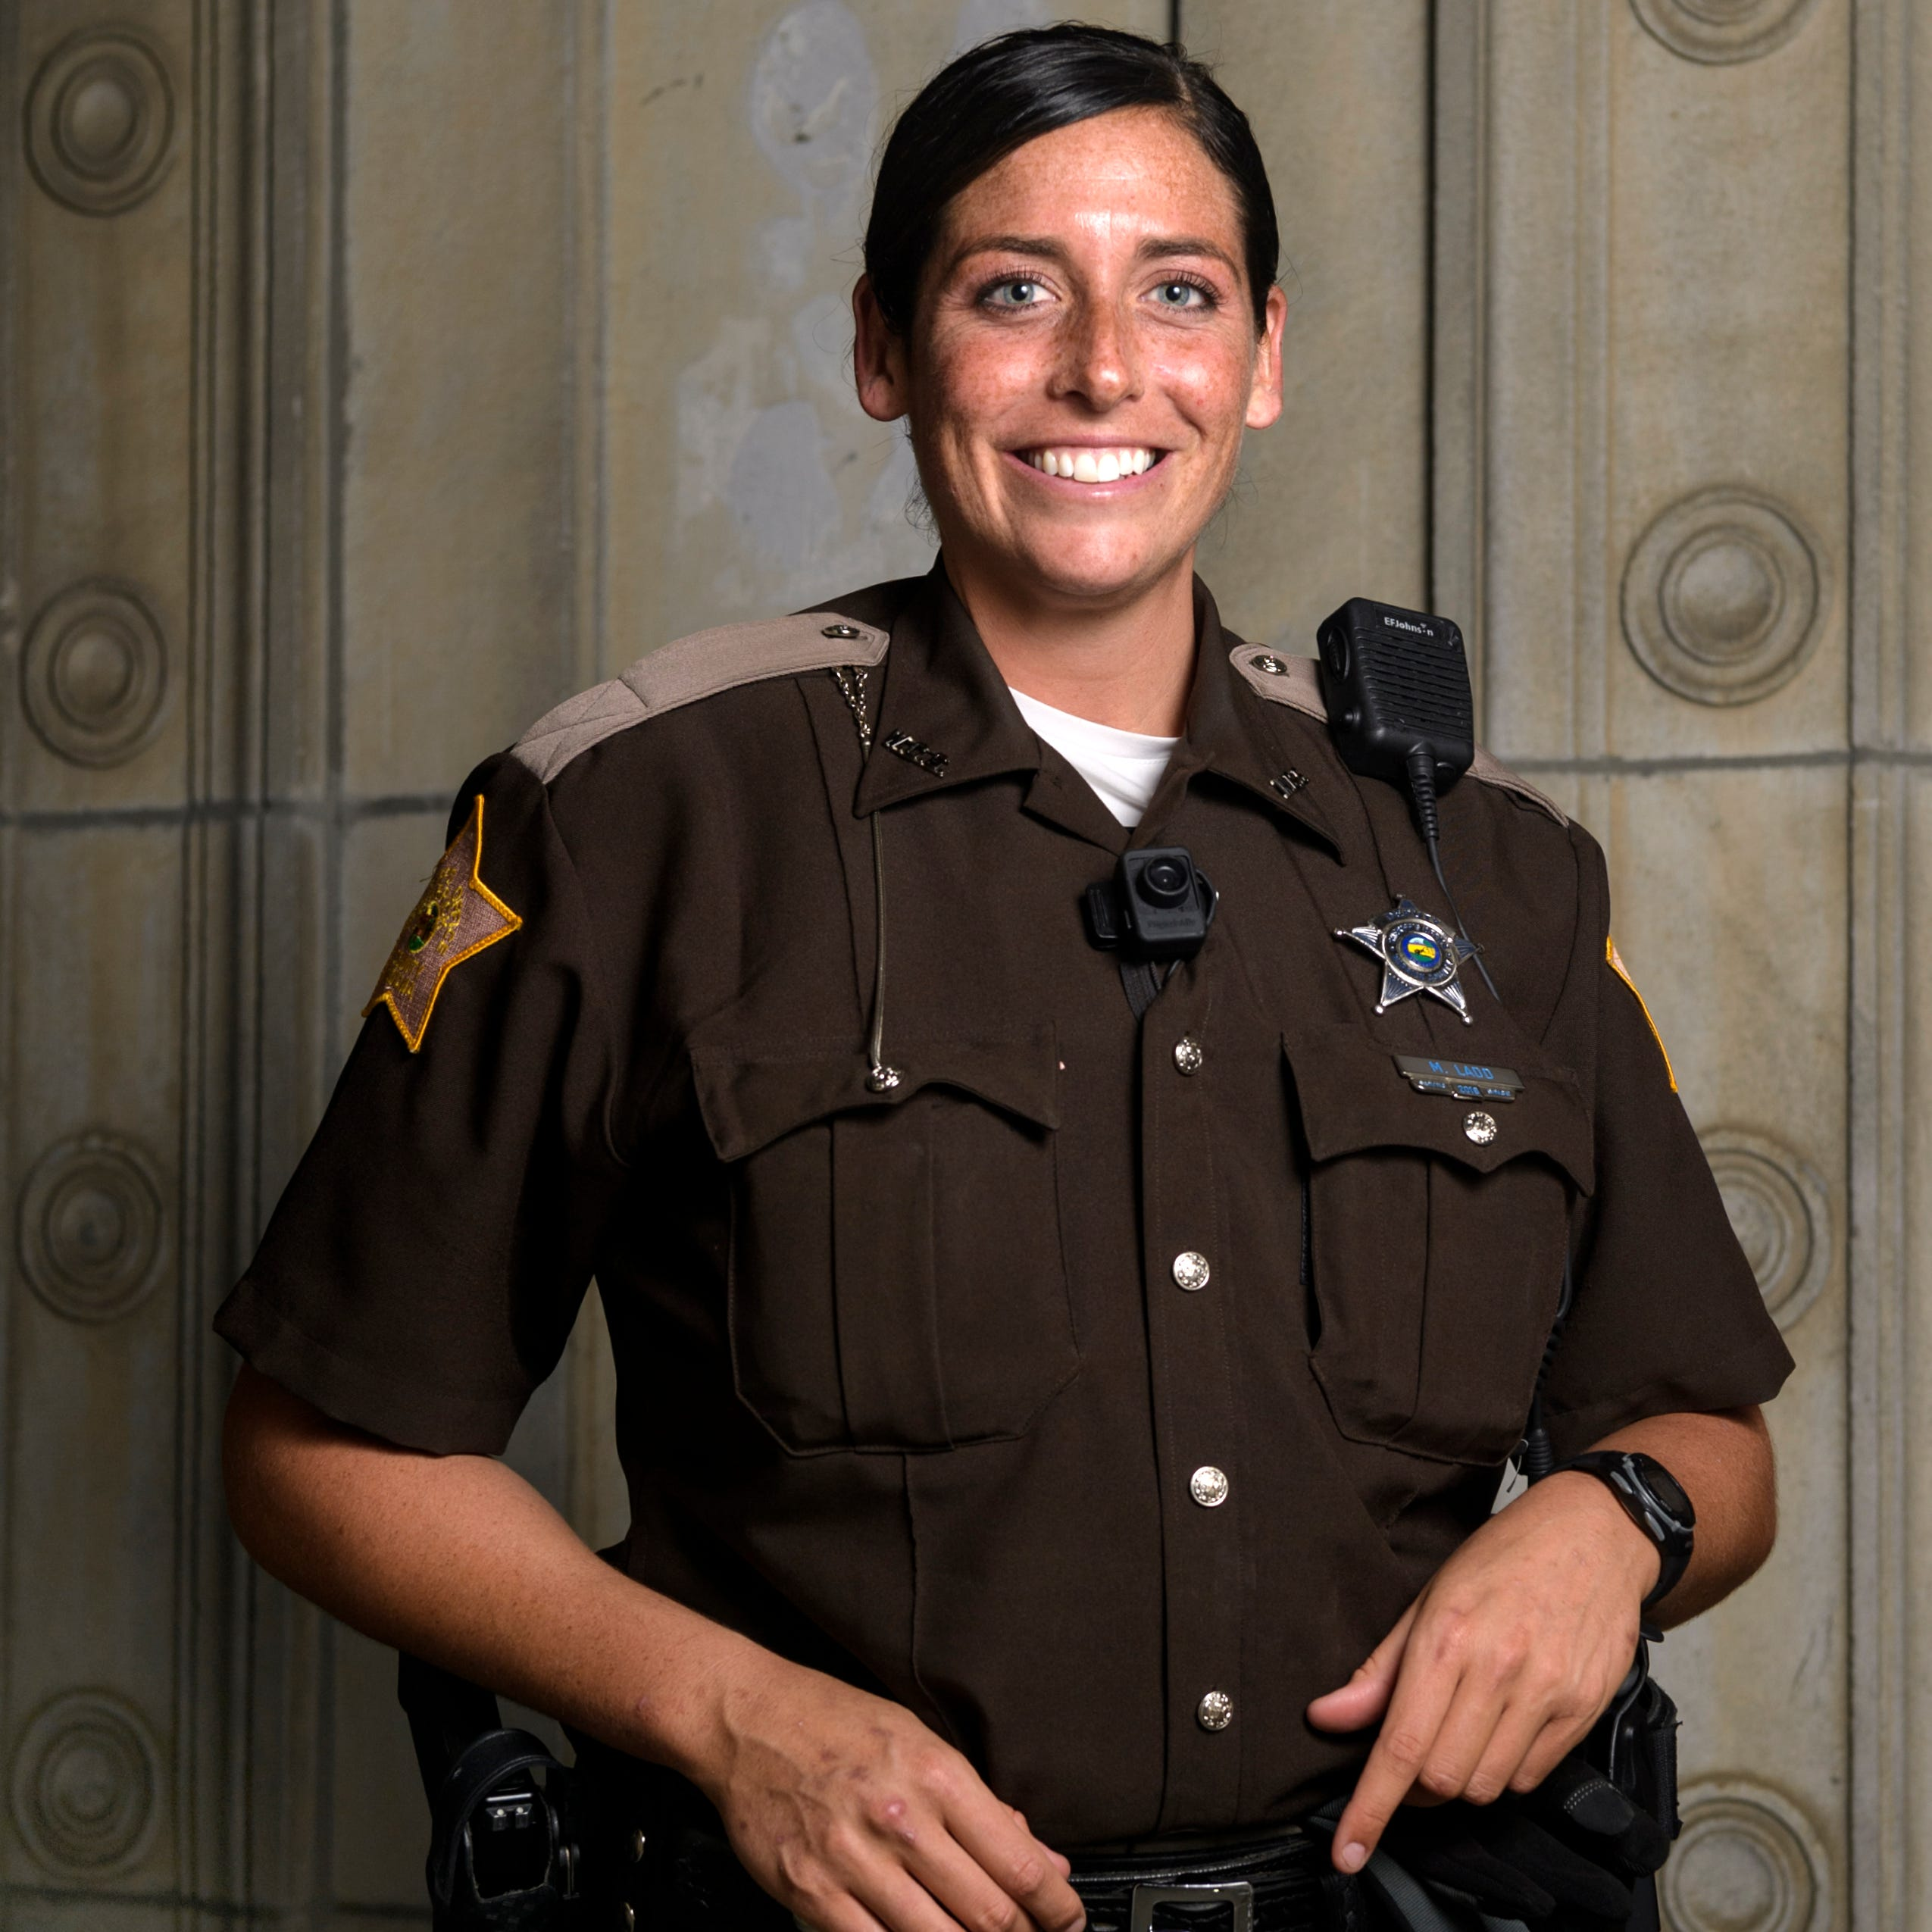 Mallory Ladd, who led Memorial to state title, now works as a sheriff's deputy